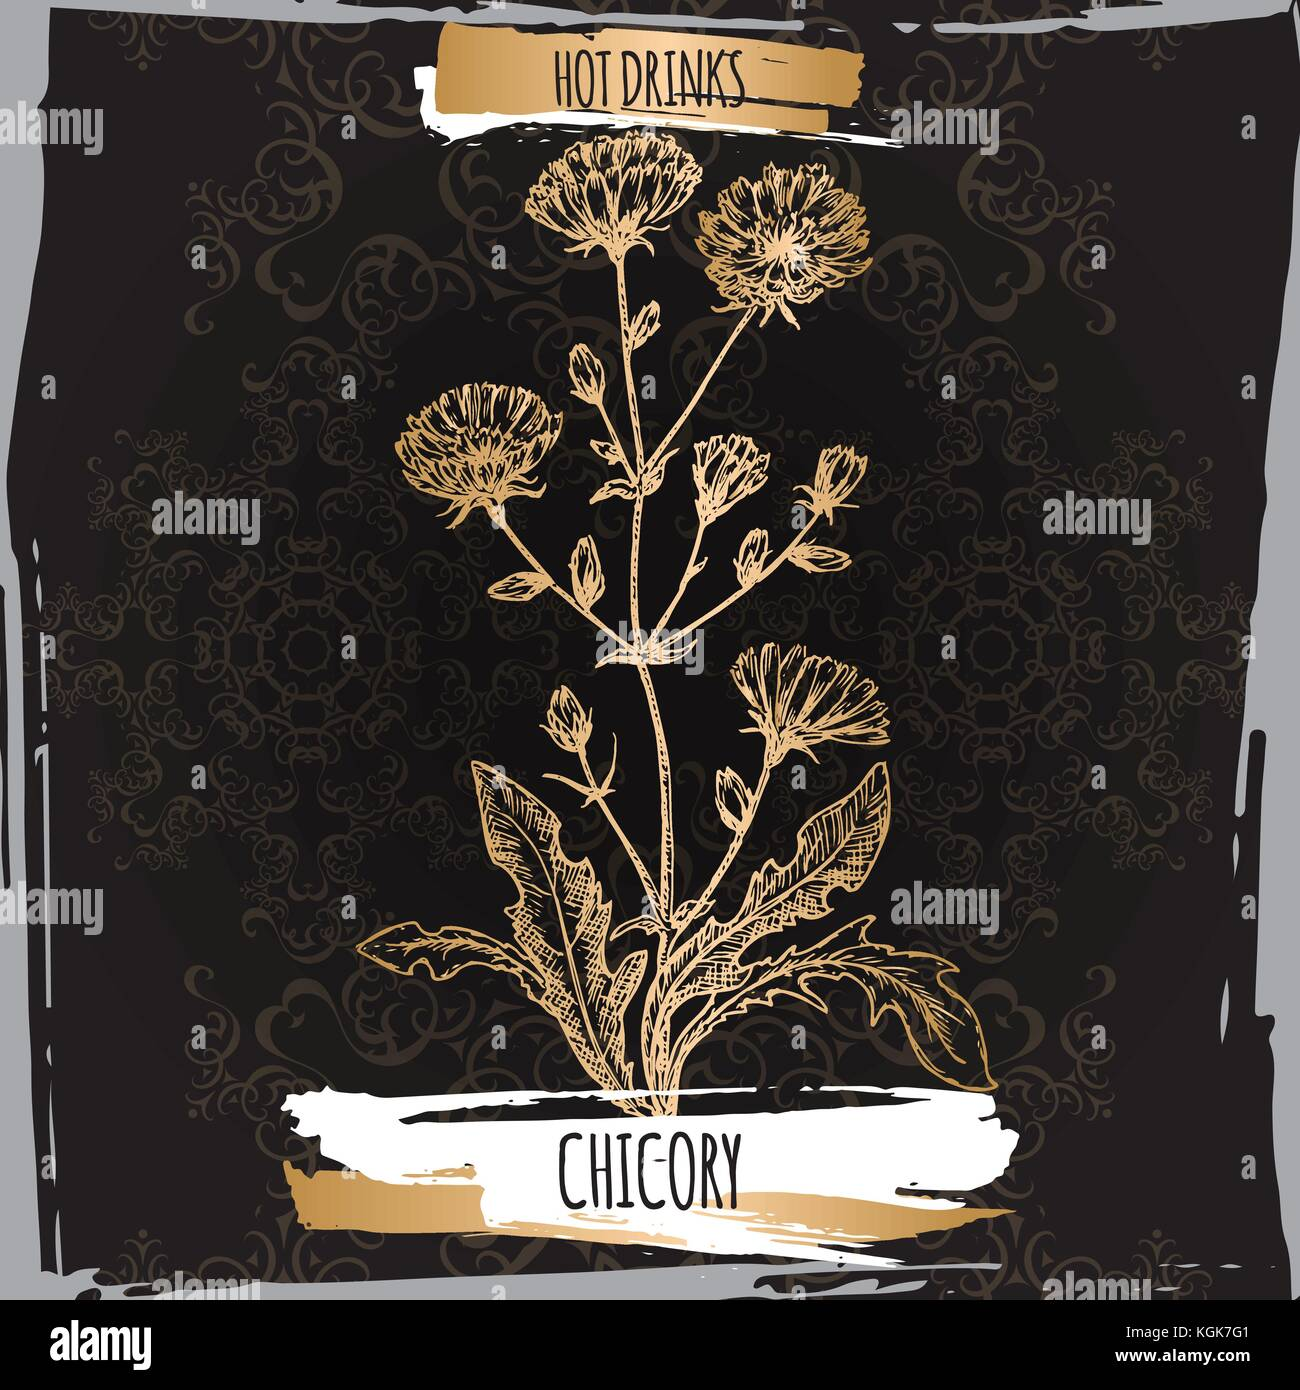 Cichorium intybus aka common chicory sketch on black background. Used as coffee substitute. - Stock Image